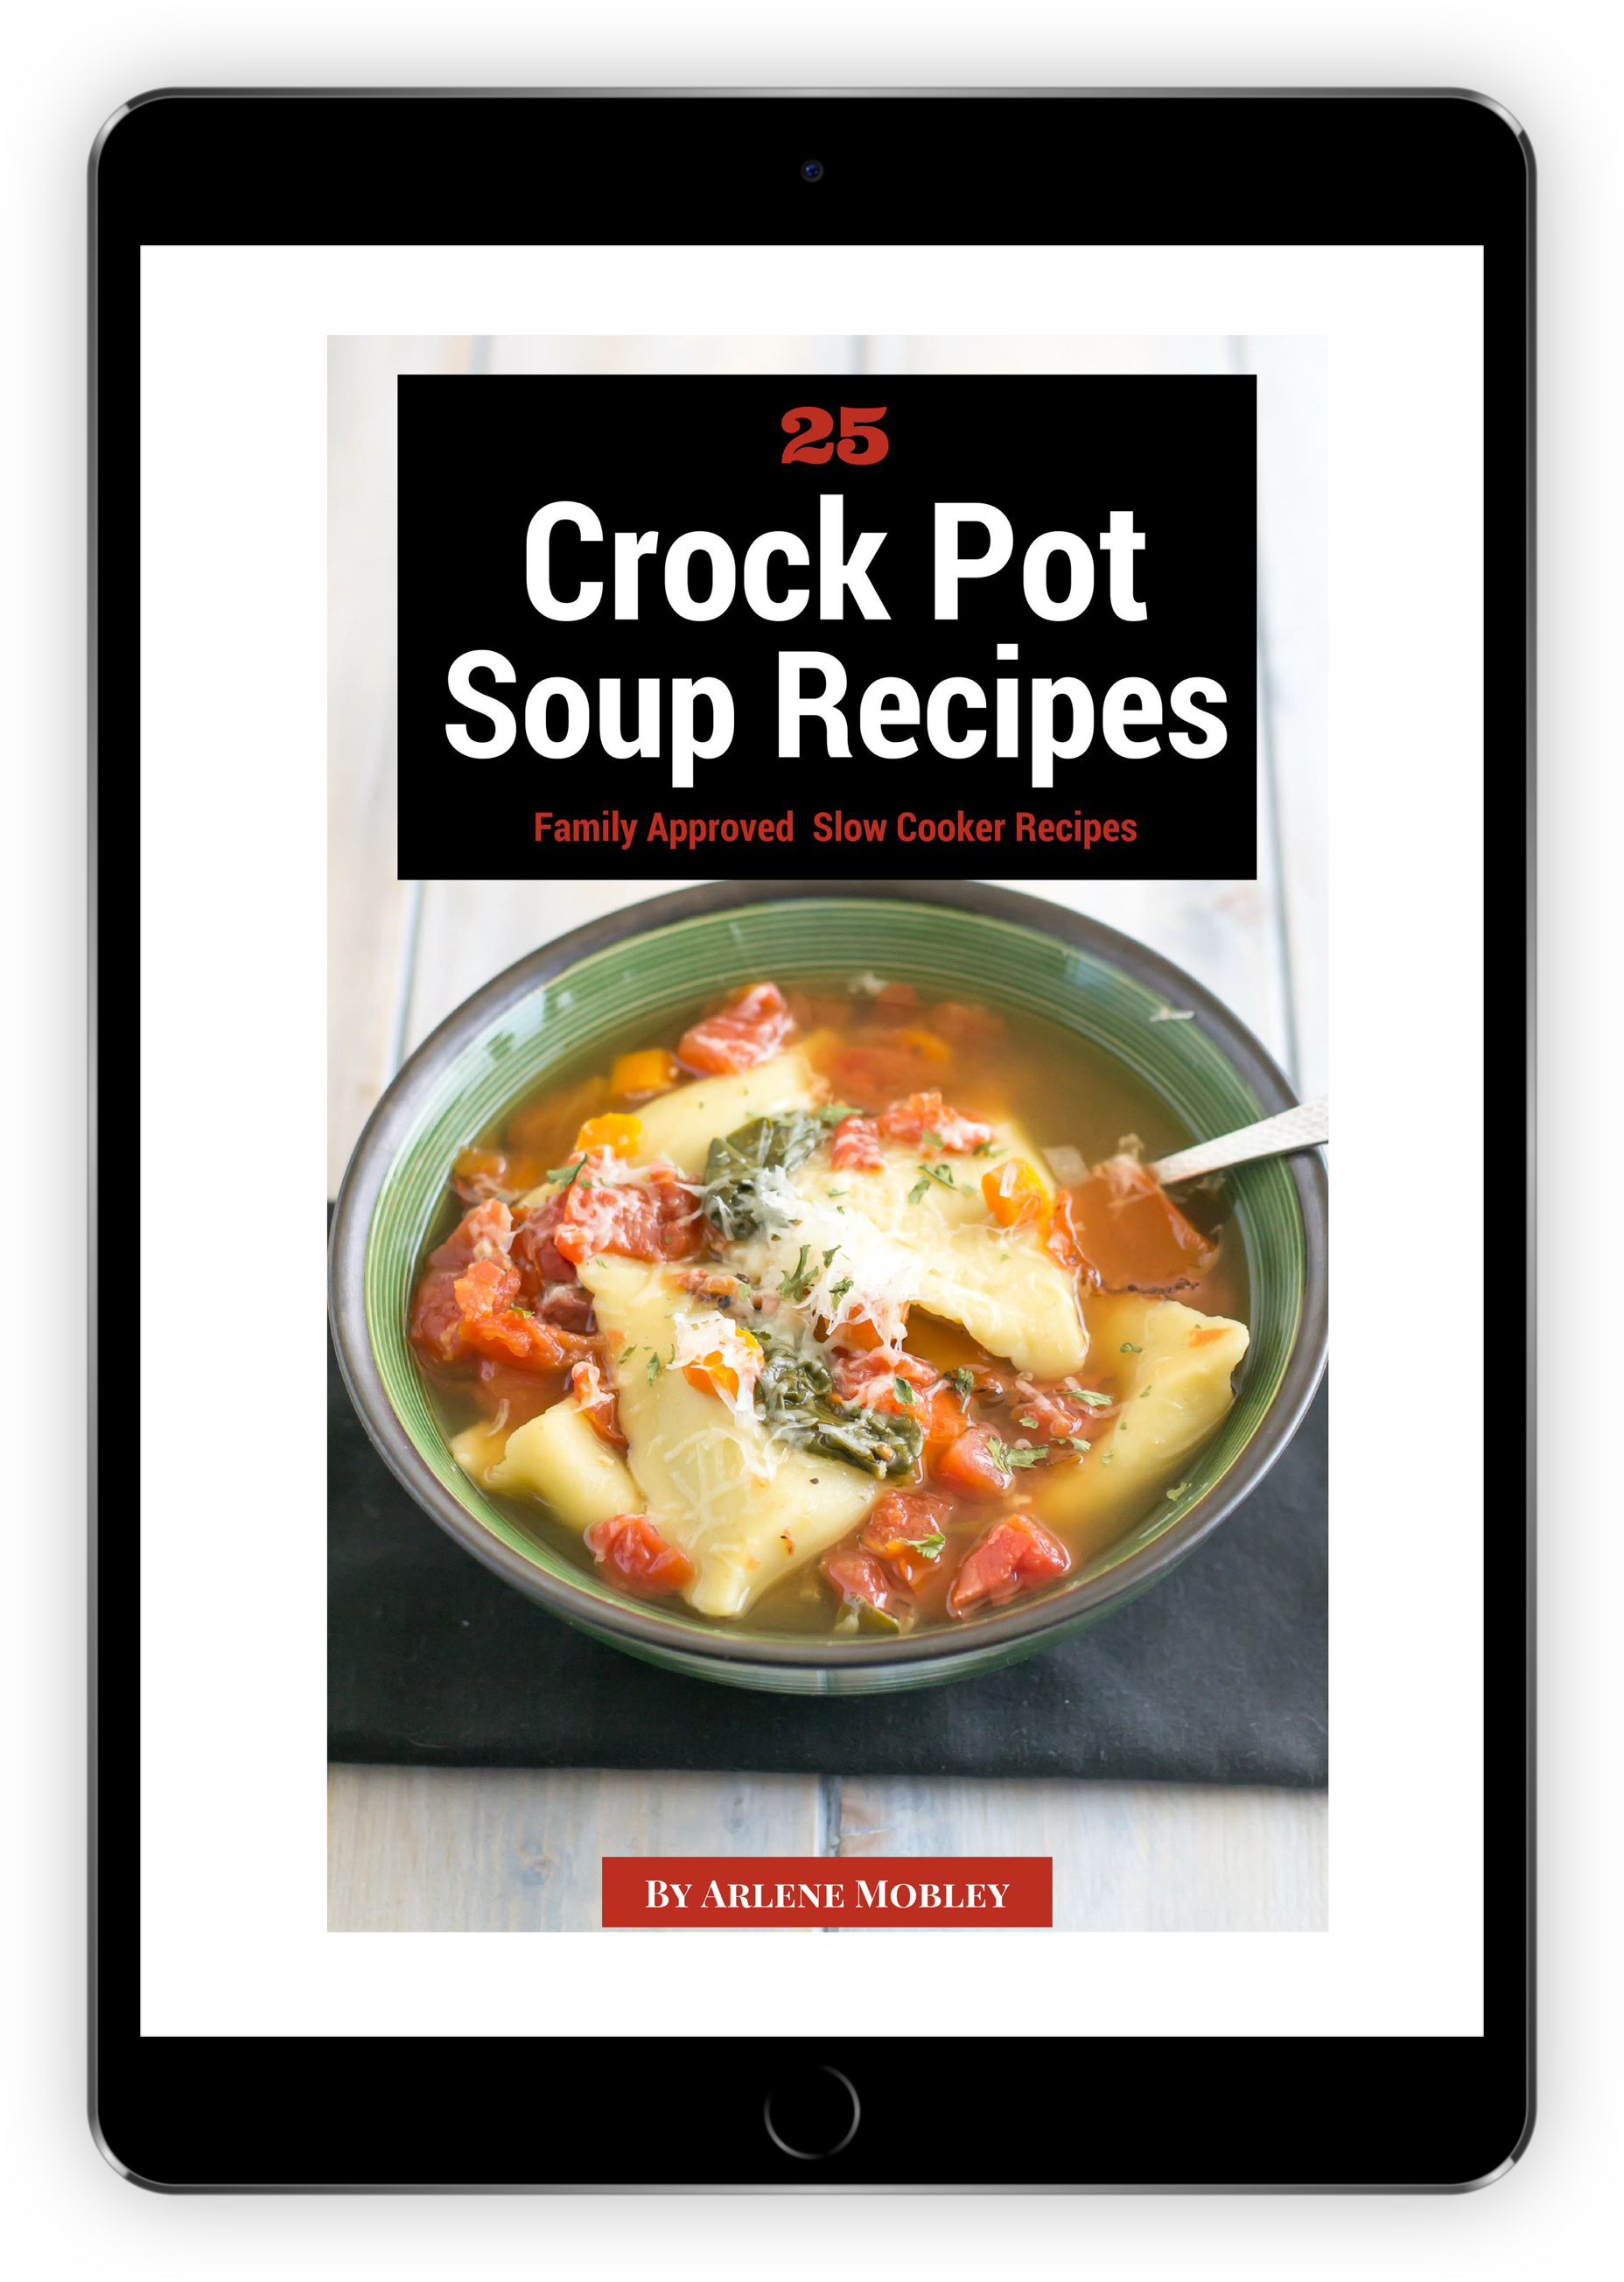 25CrockPotSoupRecipes Mockup.png